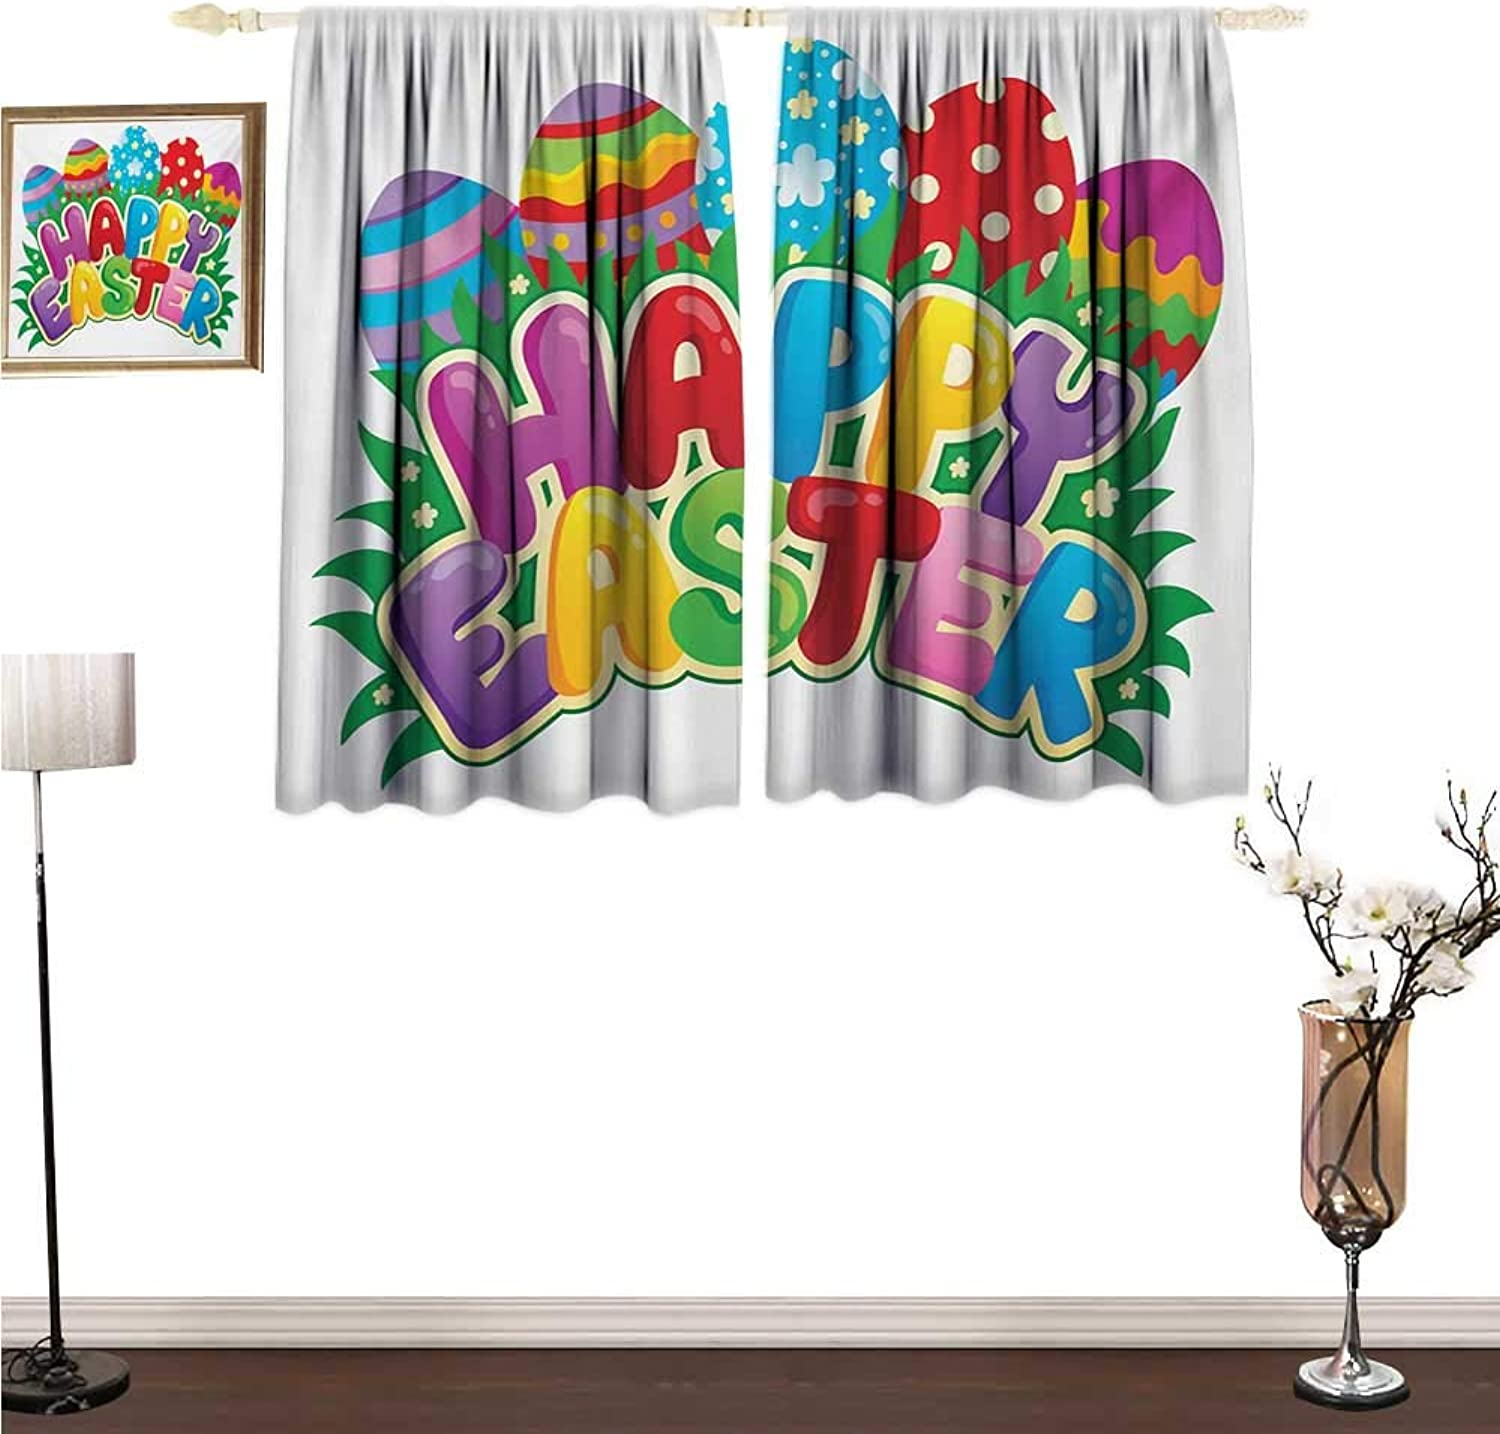 Unpremoon Curtian Easter,Cartoon Style Ornamental Eggs with Polka Dots Flowers and Stripes Happy Easter Quote,Multicolor Blackout Drapes for Bedroom W55 x L45